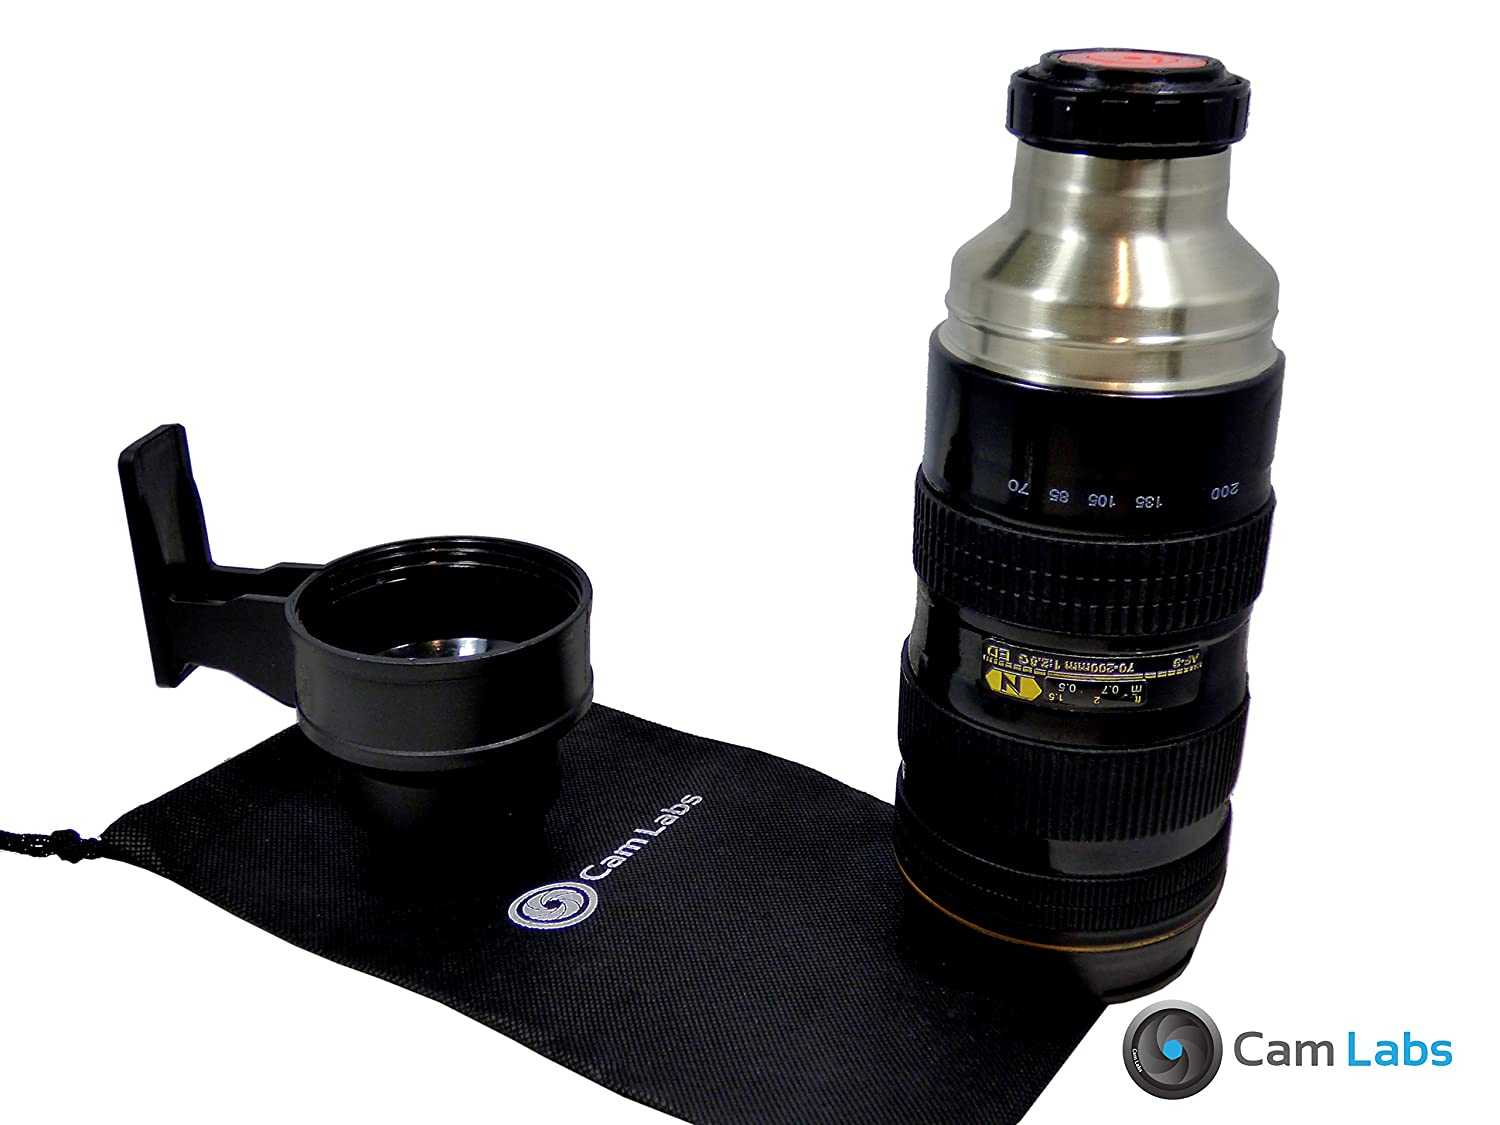 CamLabs Camera Lens Thermos - Nikon 70-200mm Lens Replica - High-grade Travel Insulated Tumbler - Stainless Steel Coffee Travel Mug with a Handled Cup - Rubberized Exterior for Superior Grip - Guaranteed 100% Safe with FDA and SGS Approval - Free Travel Bag - Best Gift for Photographers - 16oz